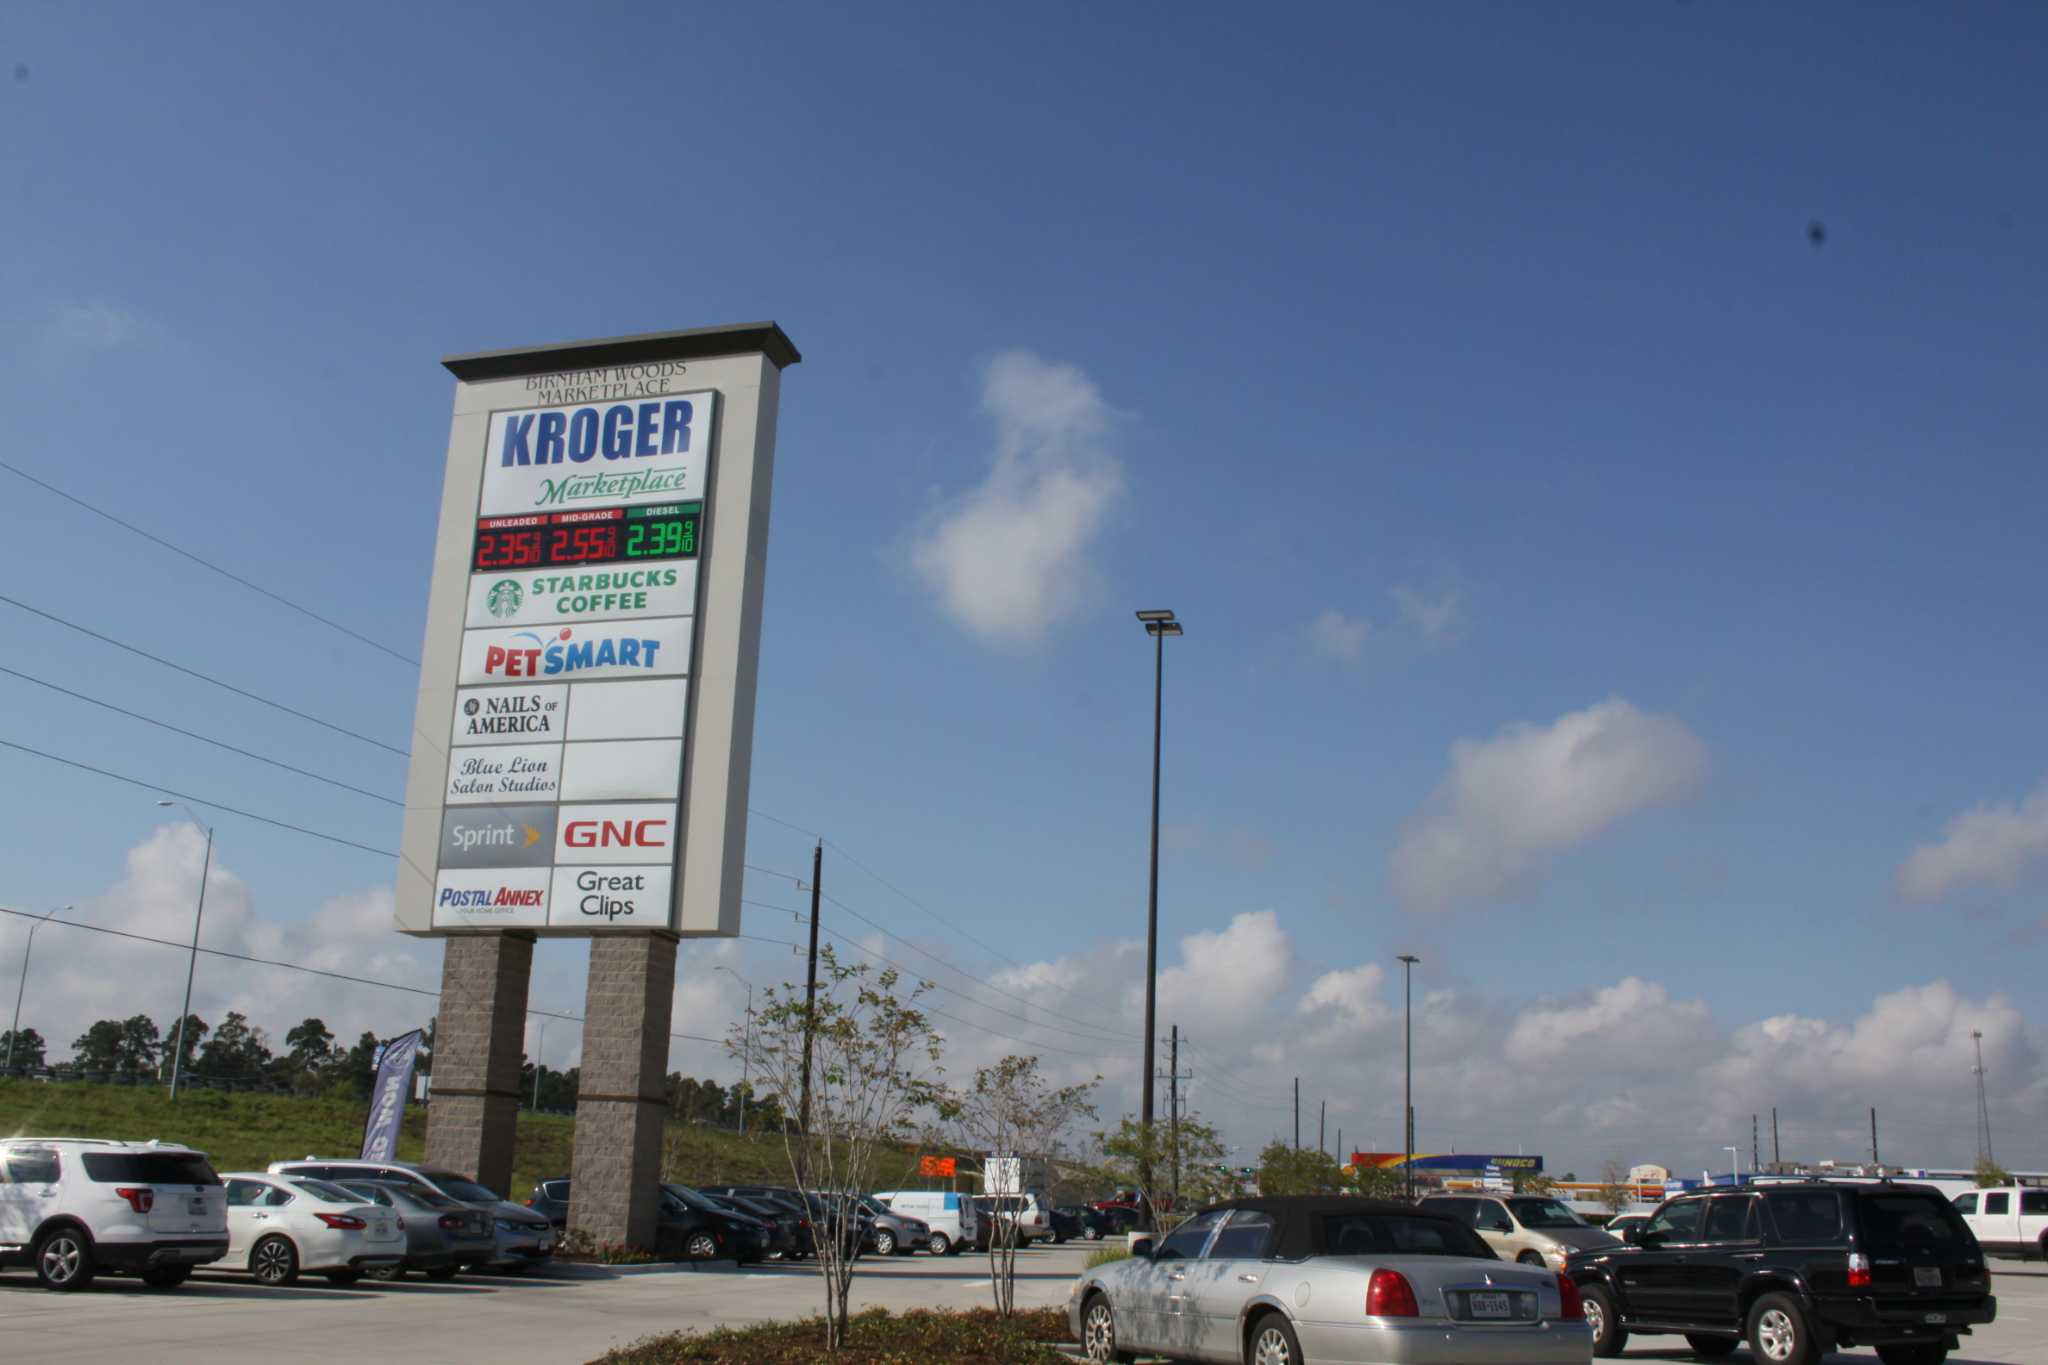 Kroger Marketplace Opens In Spring San Antonio Express News